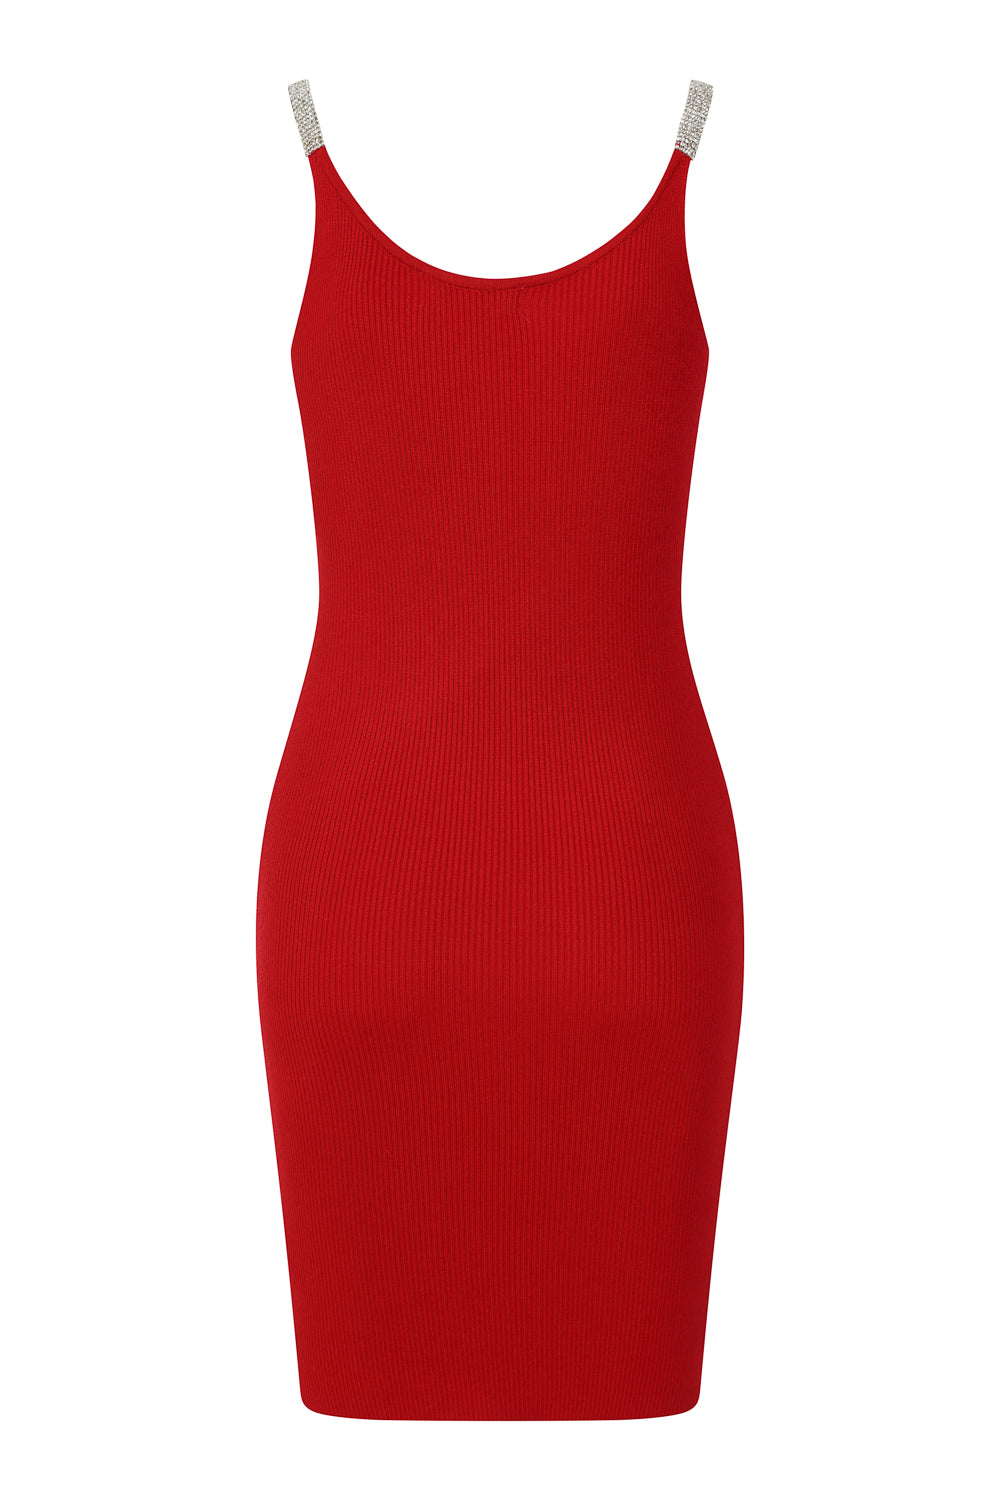 Angelina Red Diamante Strap Ribbed Knitted Pencil Midi Bodycon Dress